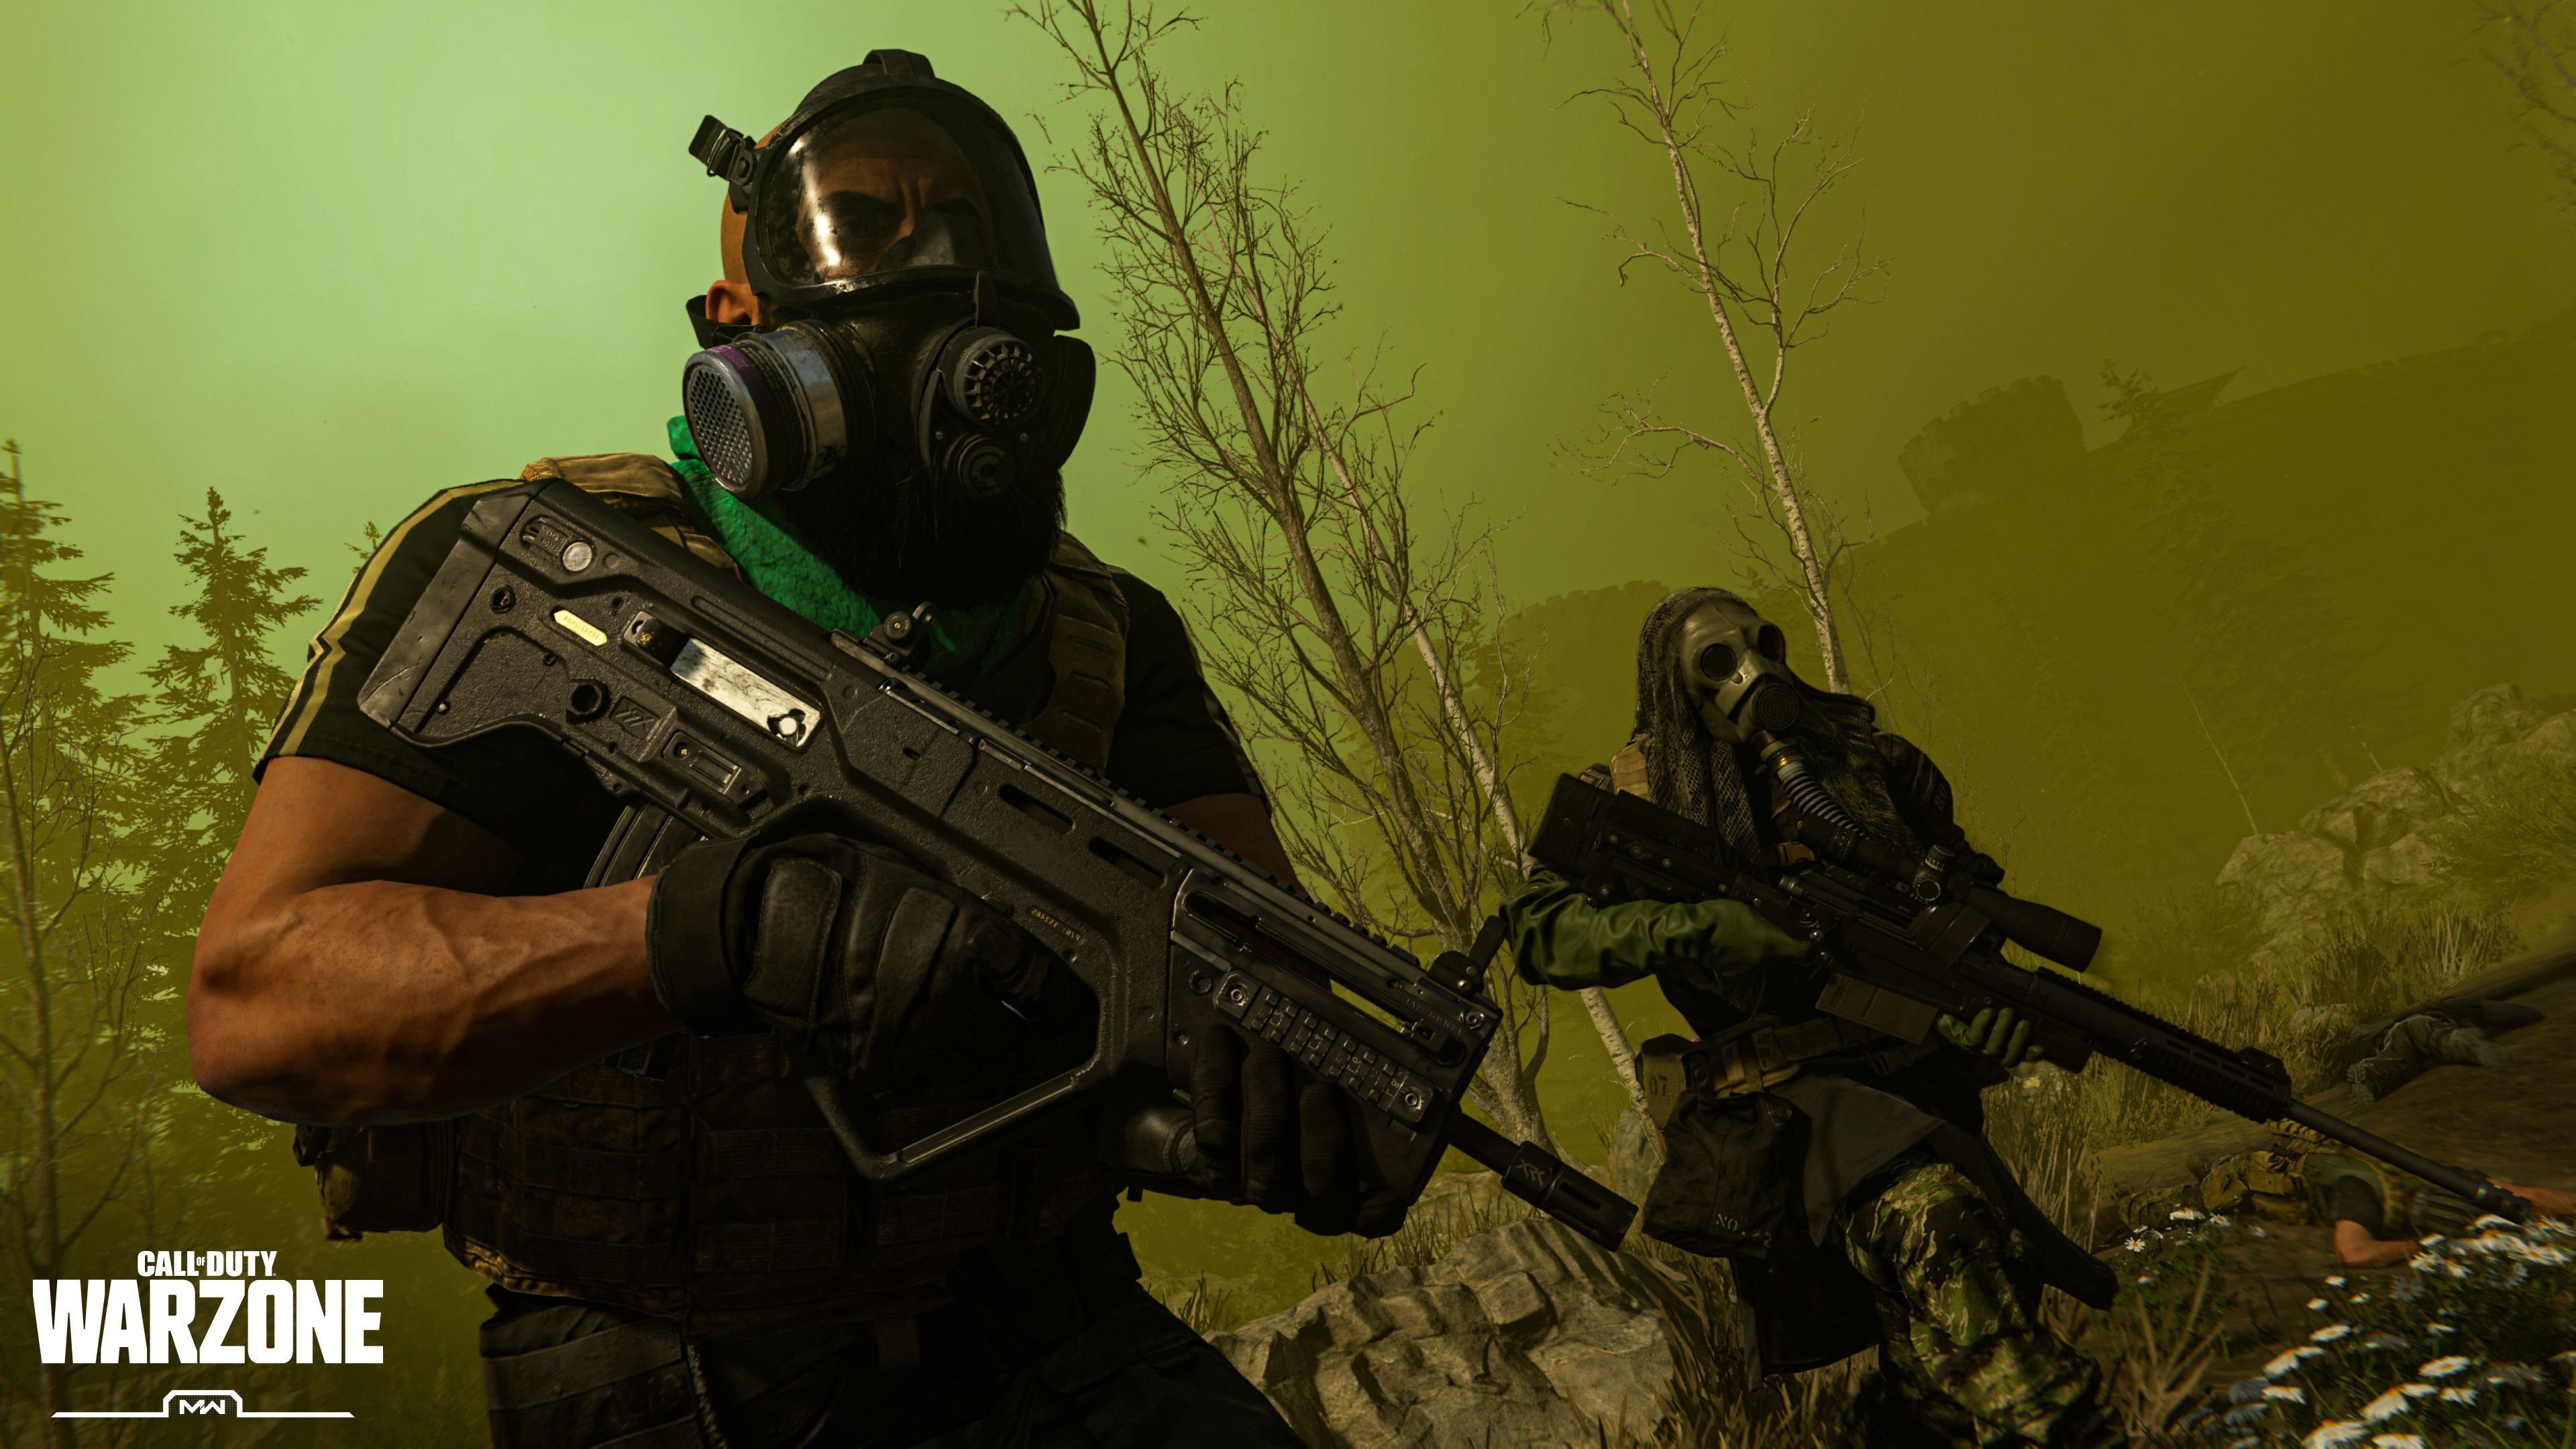 /new-warzone-bunker-locations-find-all-the-bunkers-in-season-2-du1633c5 feature image